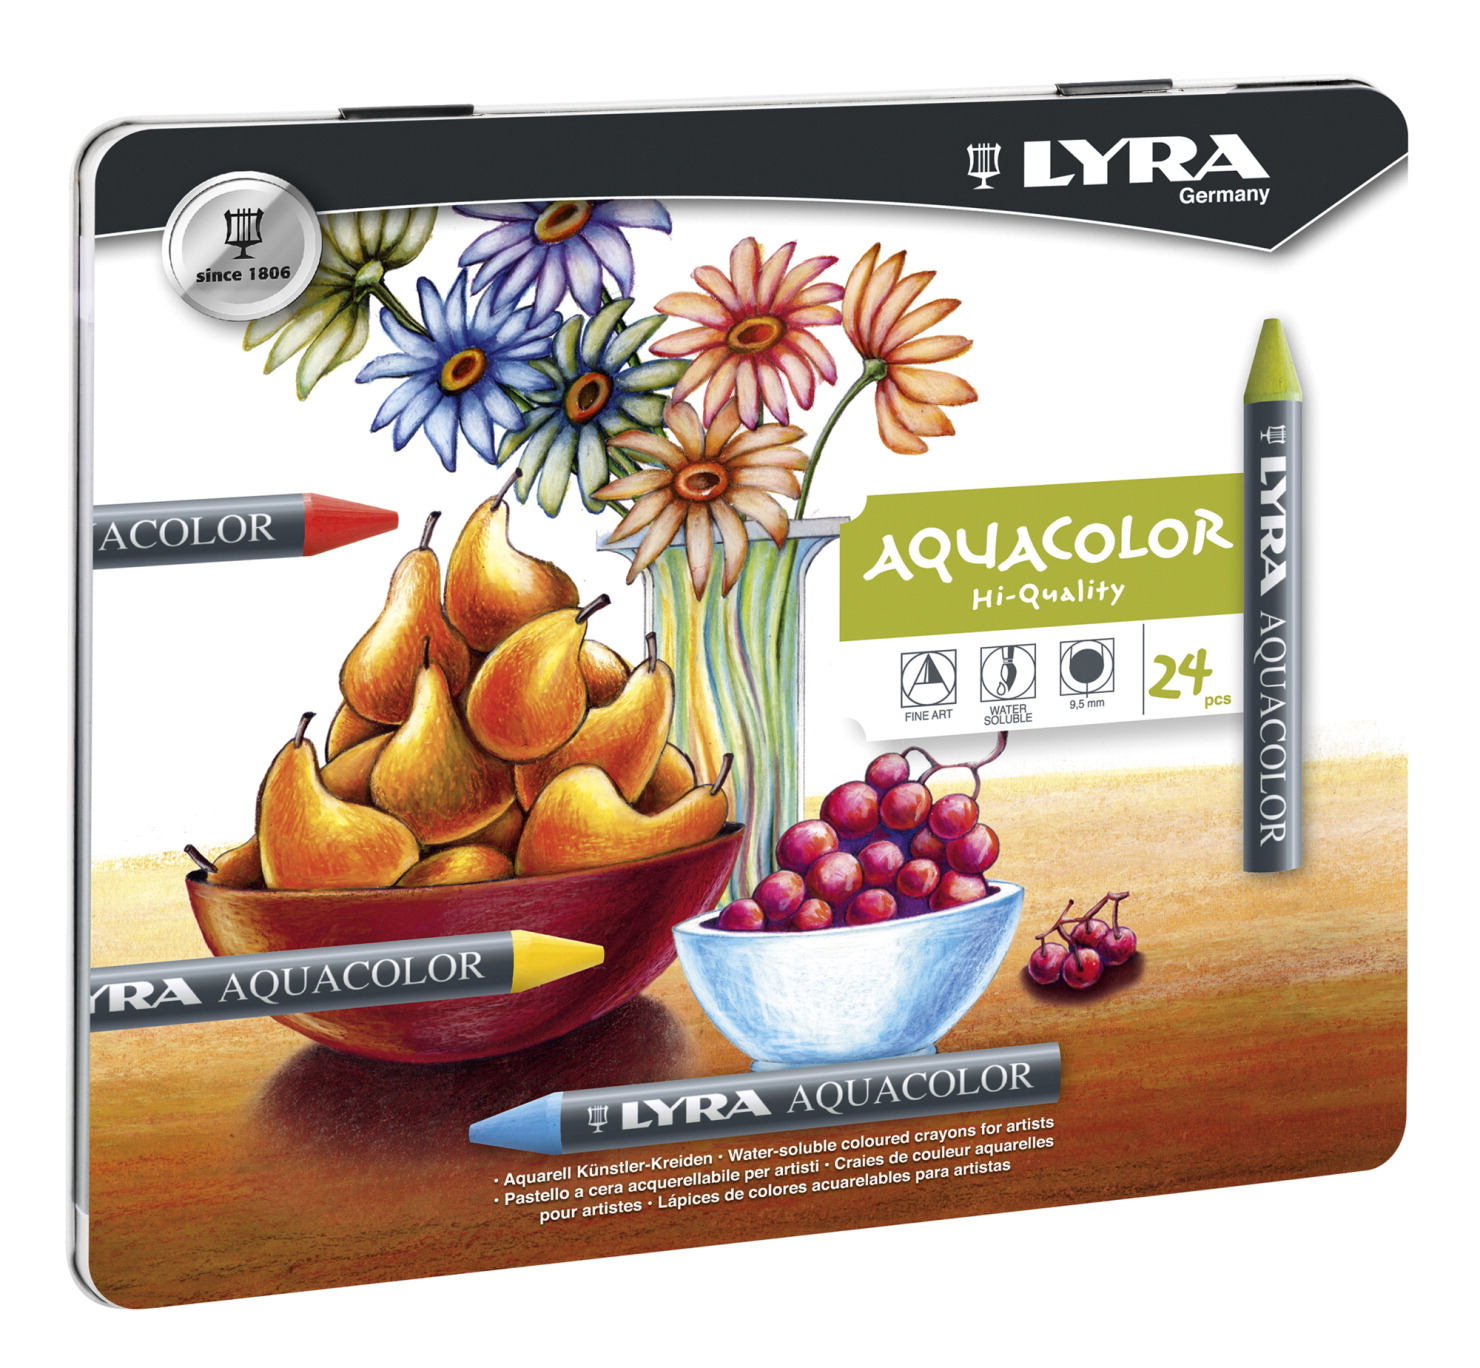 Lyra Aquacolor Non-Toxic Water Soluble Crayon, Assorted Color, Set of 24